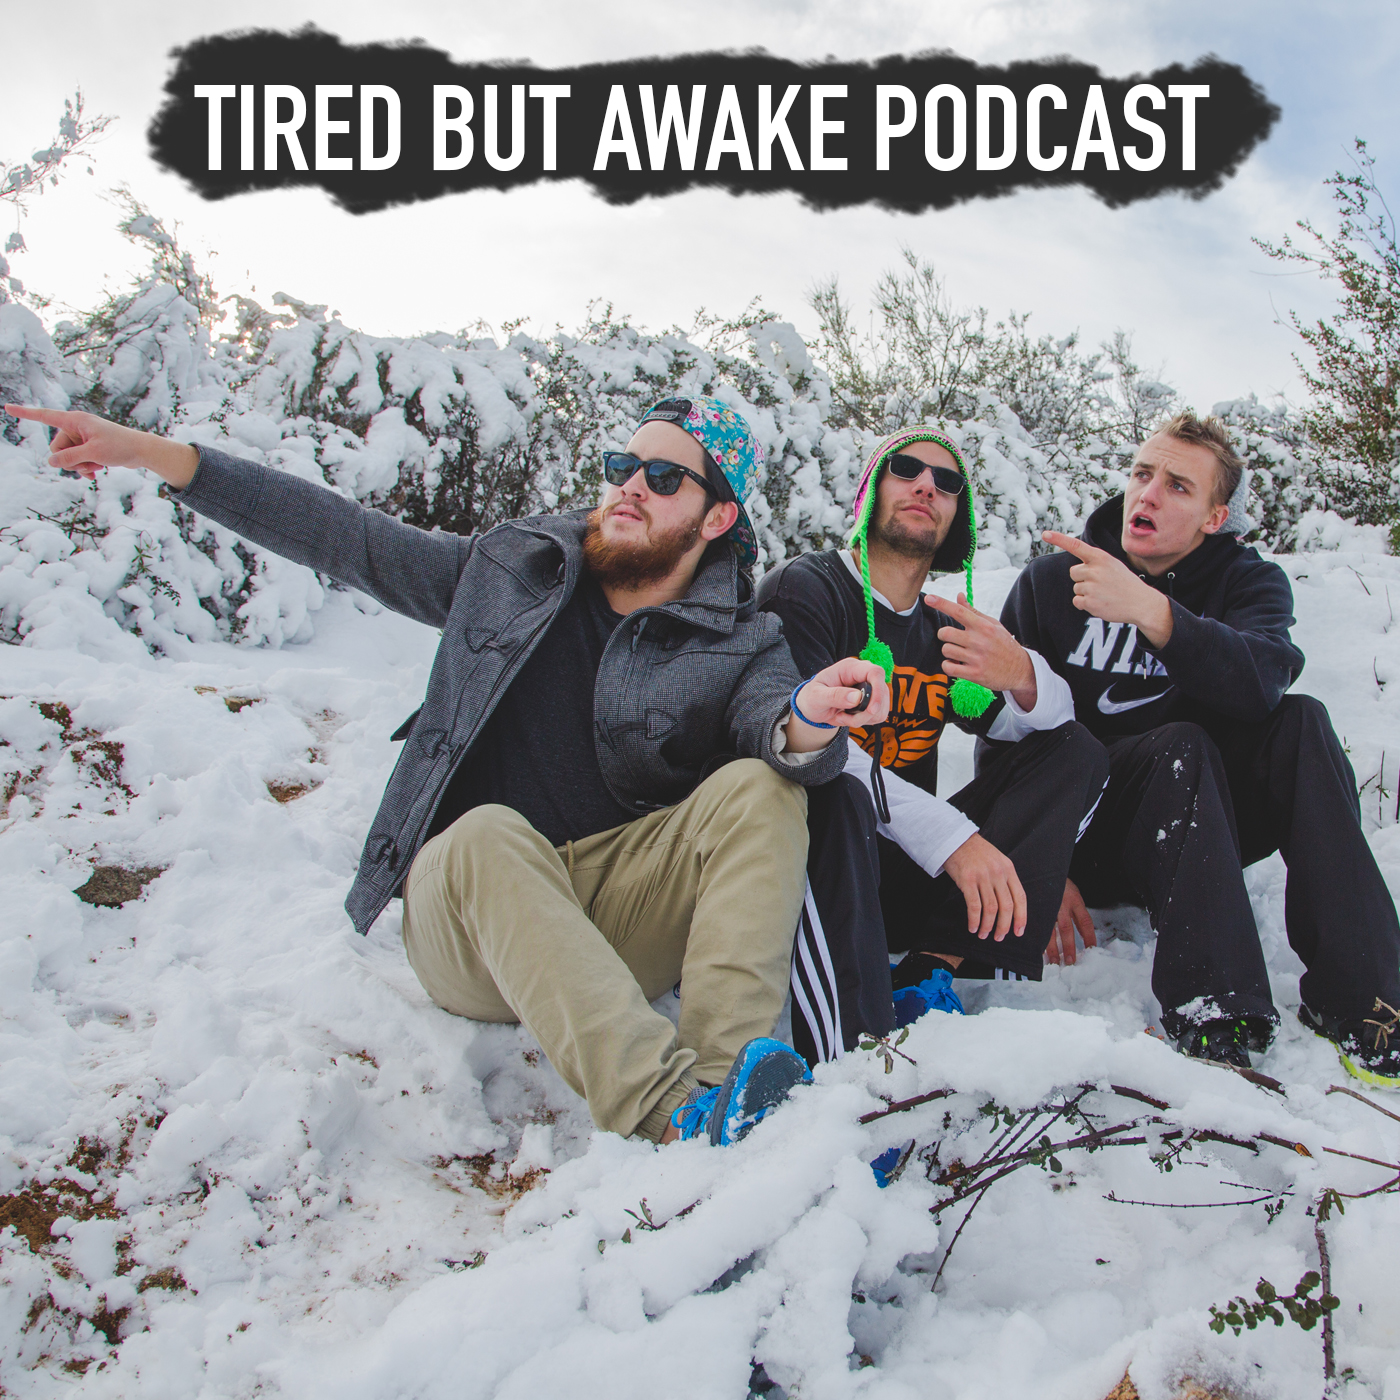 Tired But Awake Podcast - Jon Beltz